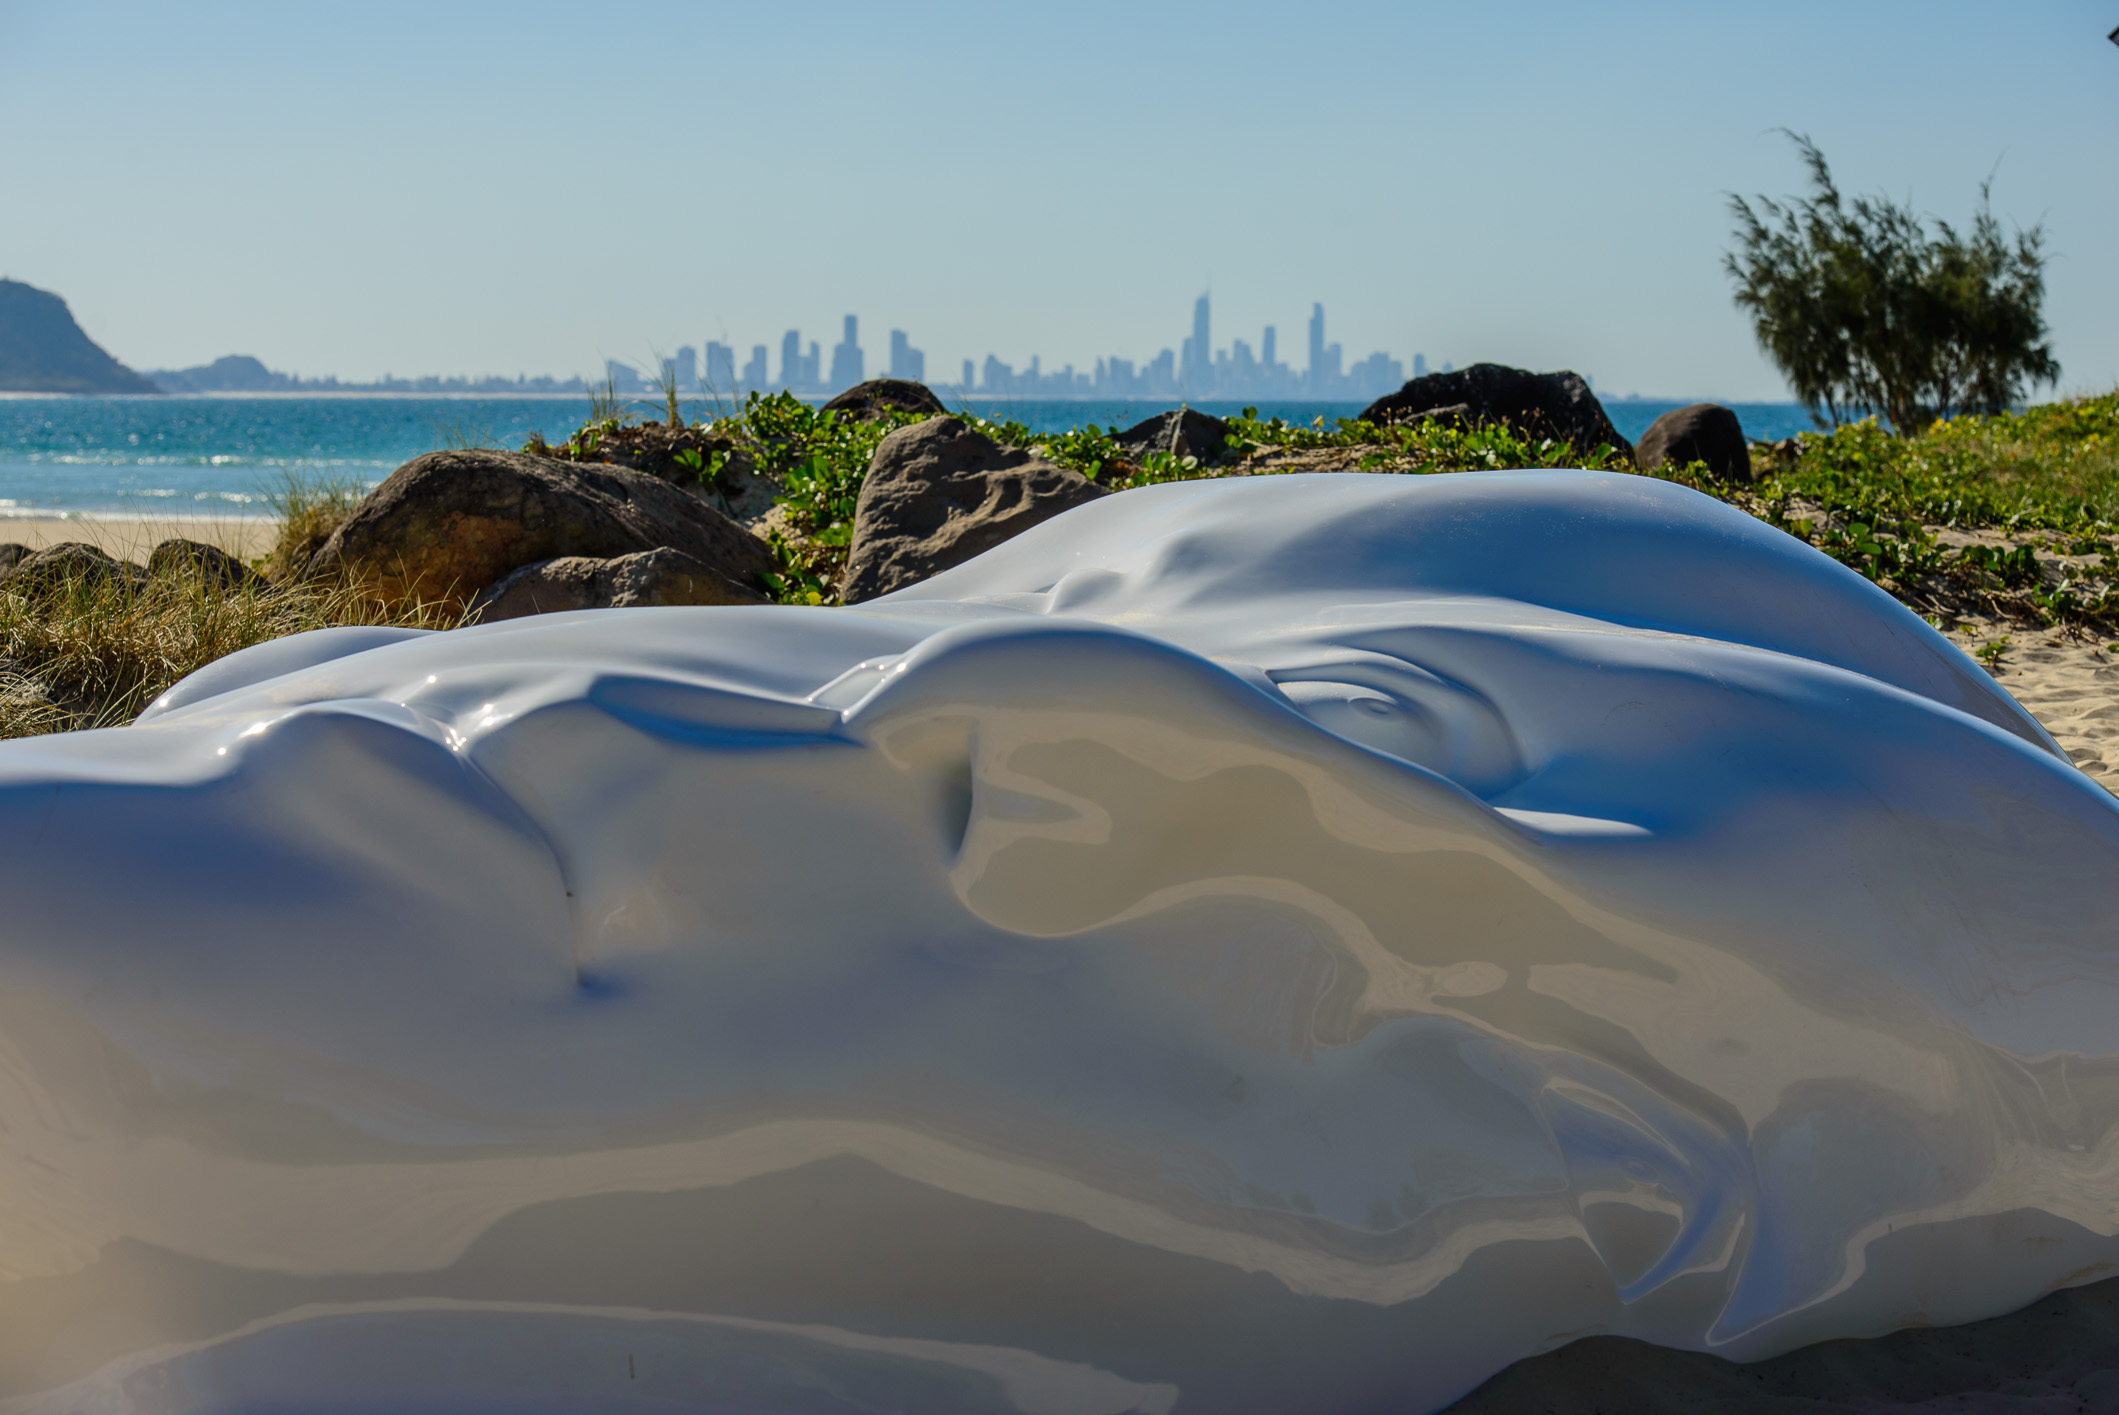 LITTORAL ZONE - THE BEGINNING     SONIA PAYES     VIC